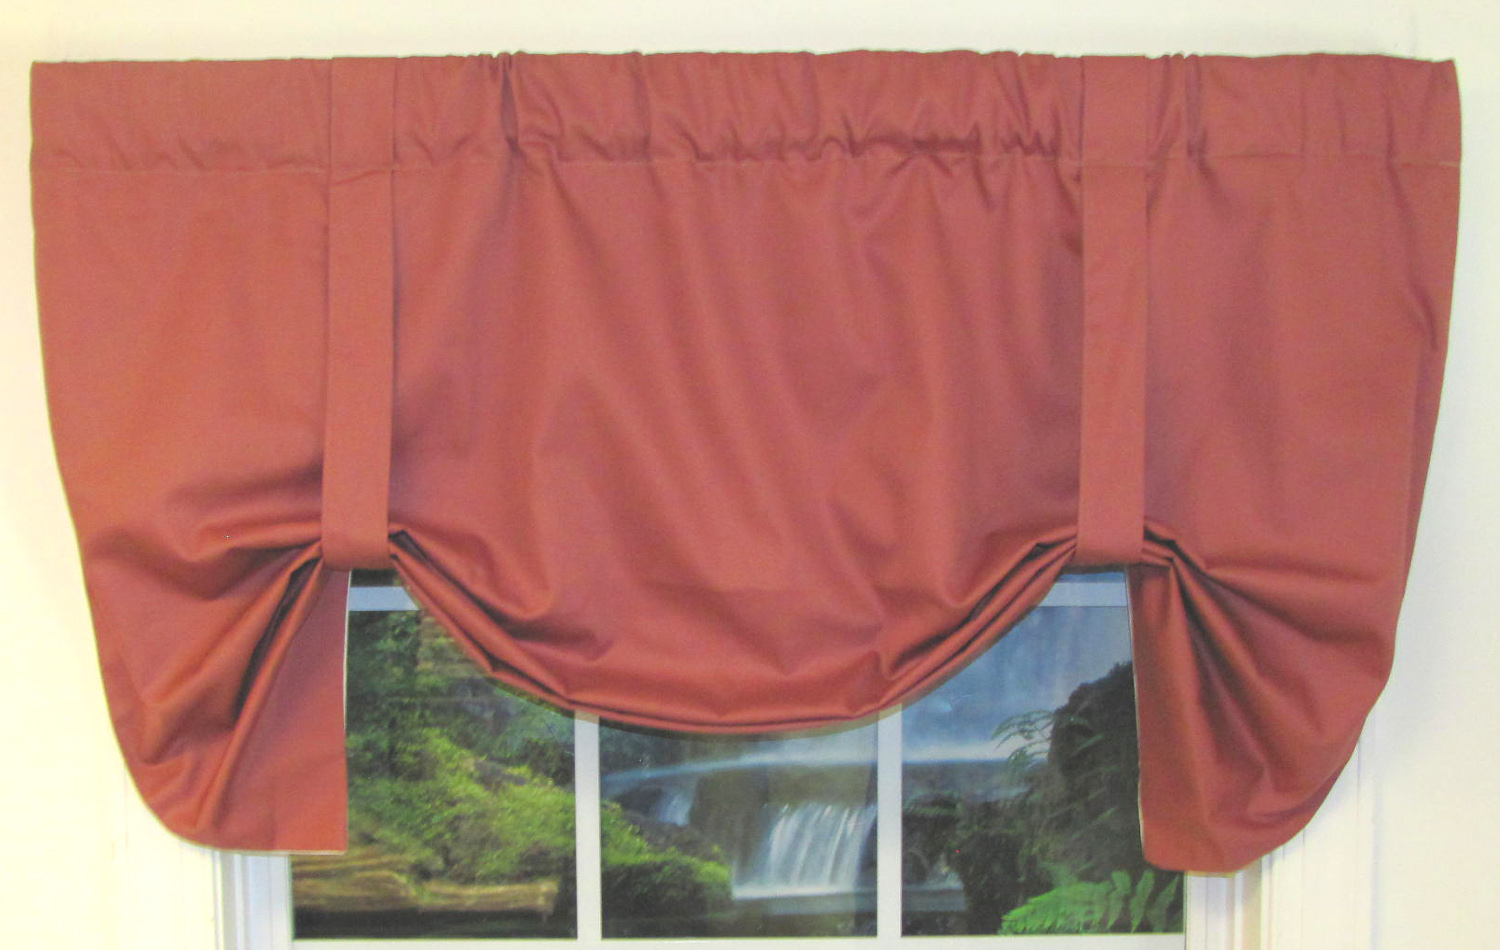 Tie Up Valances Solid Colored Patterned Prints